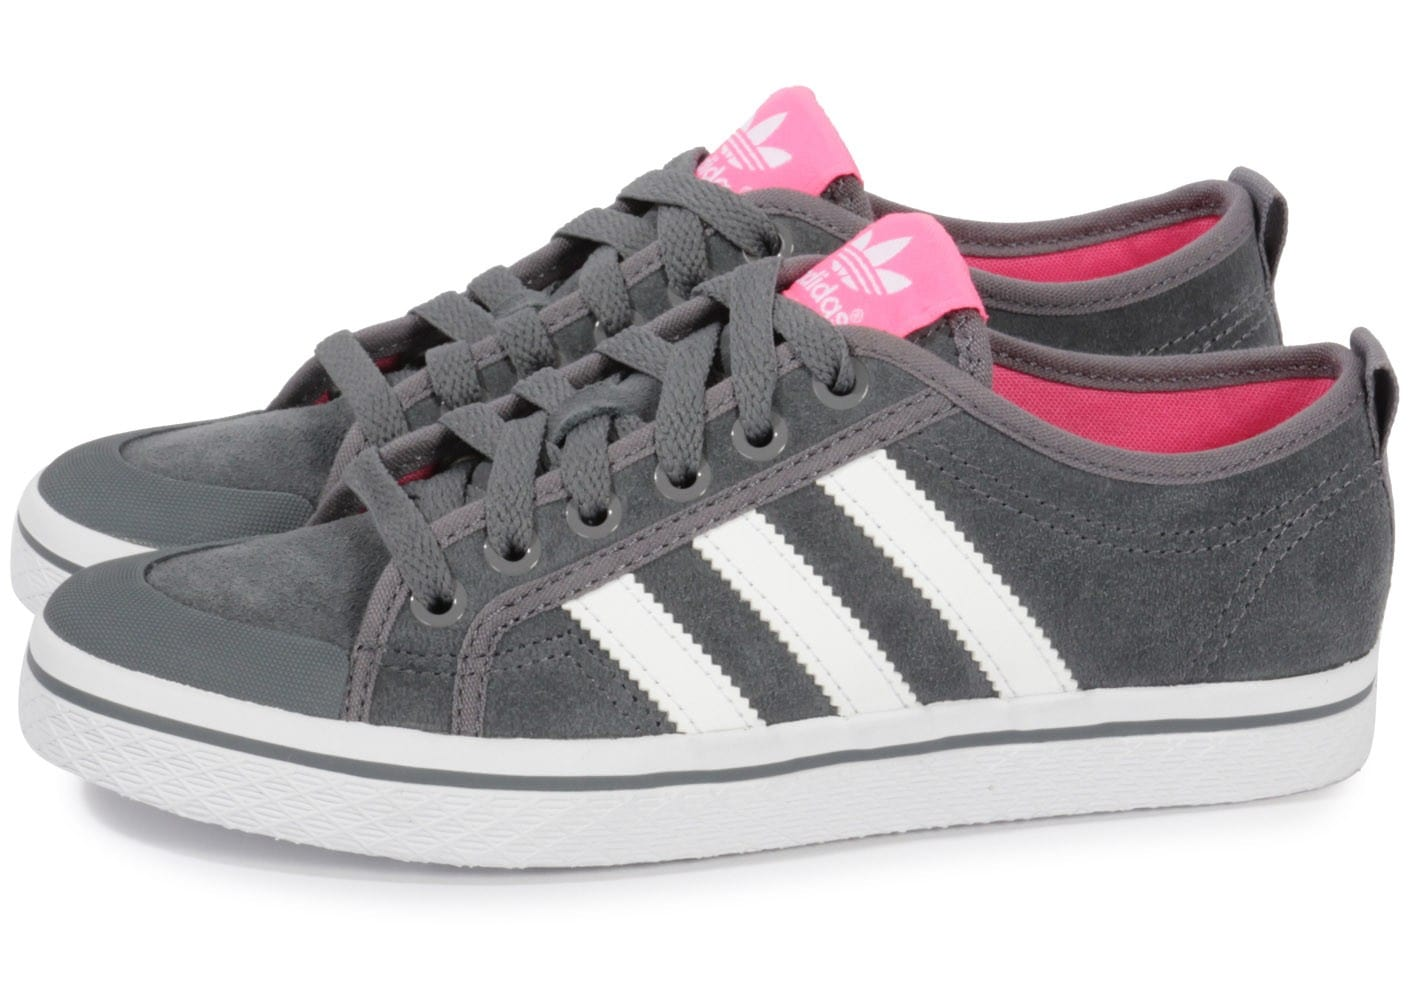 Adidas Honey Grise Low Chaussures Chausport 9EeD2WHIY